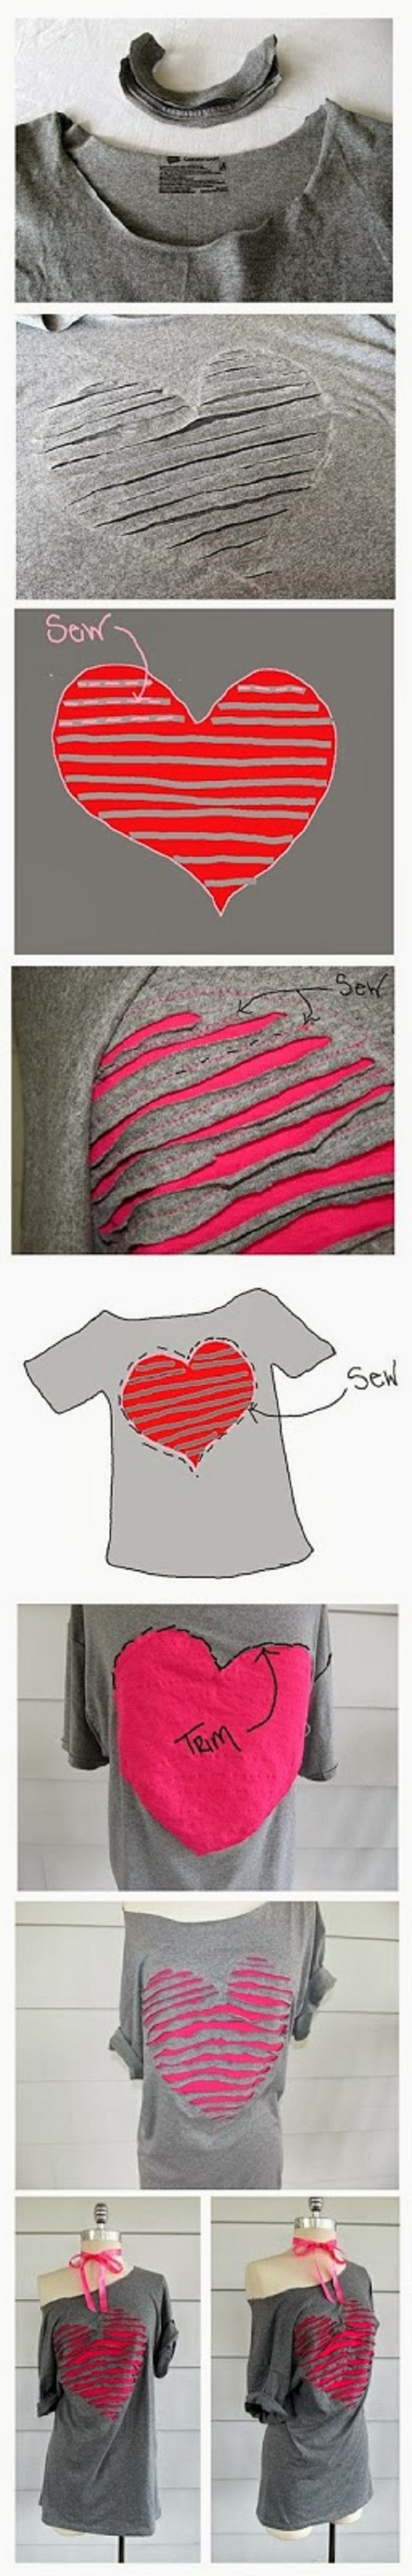 Recycling - Old t-shirt remake For You